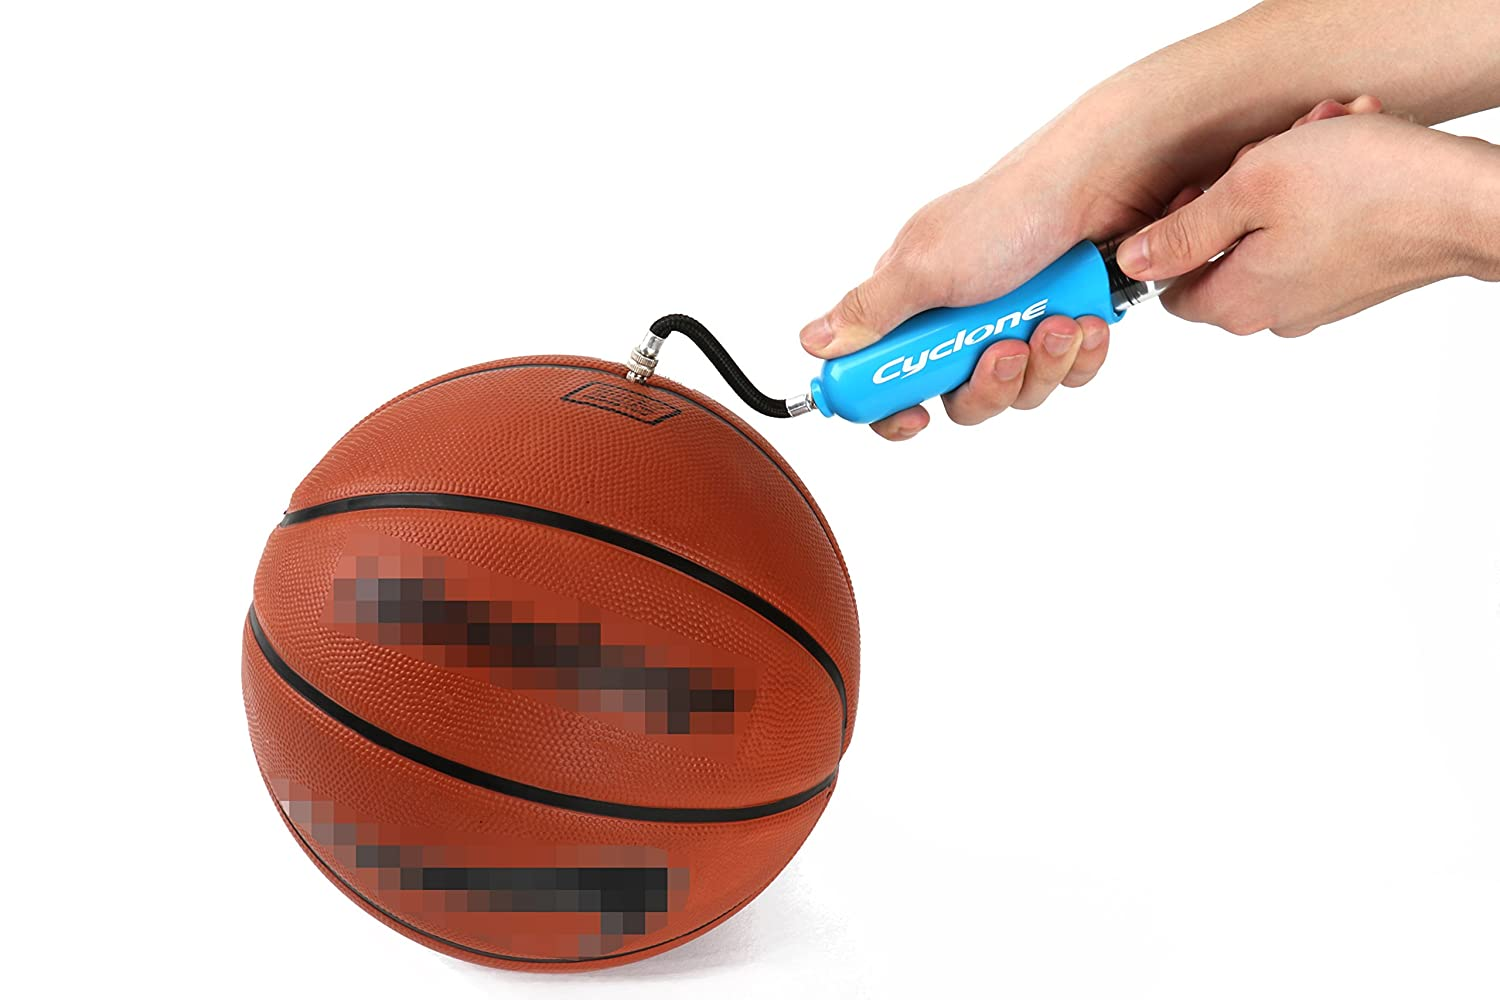 Dual Action Ball Pump Compact 6 Inches Mini Size With 4 Needles And 3 Inches Air Hose-Functional And Easy To Use Cyclone Sports